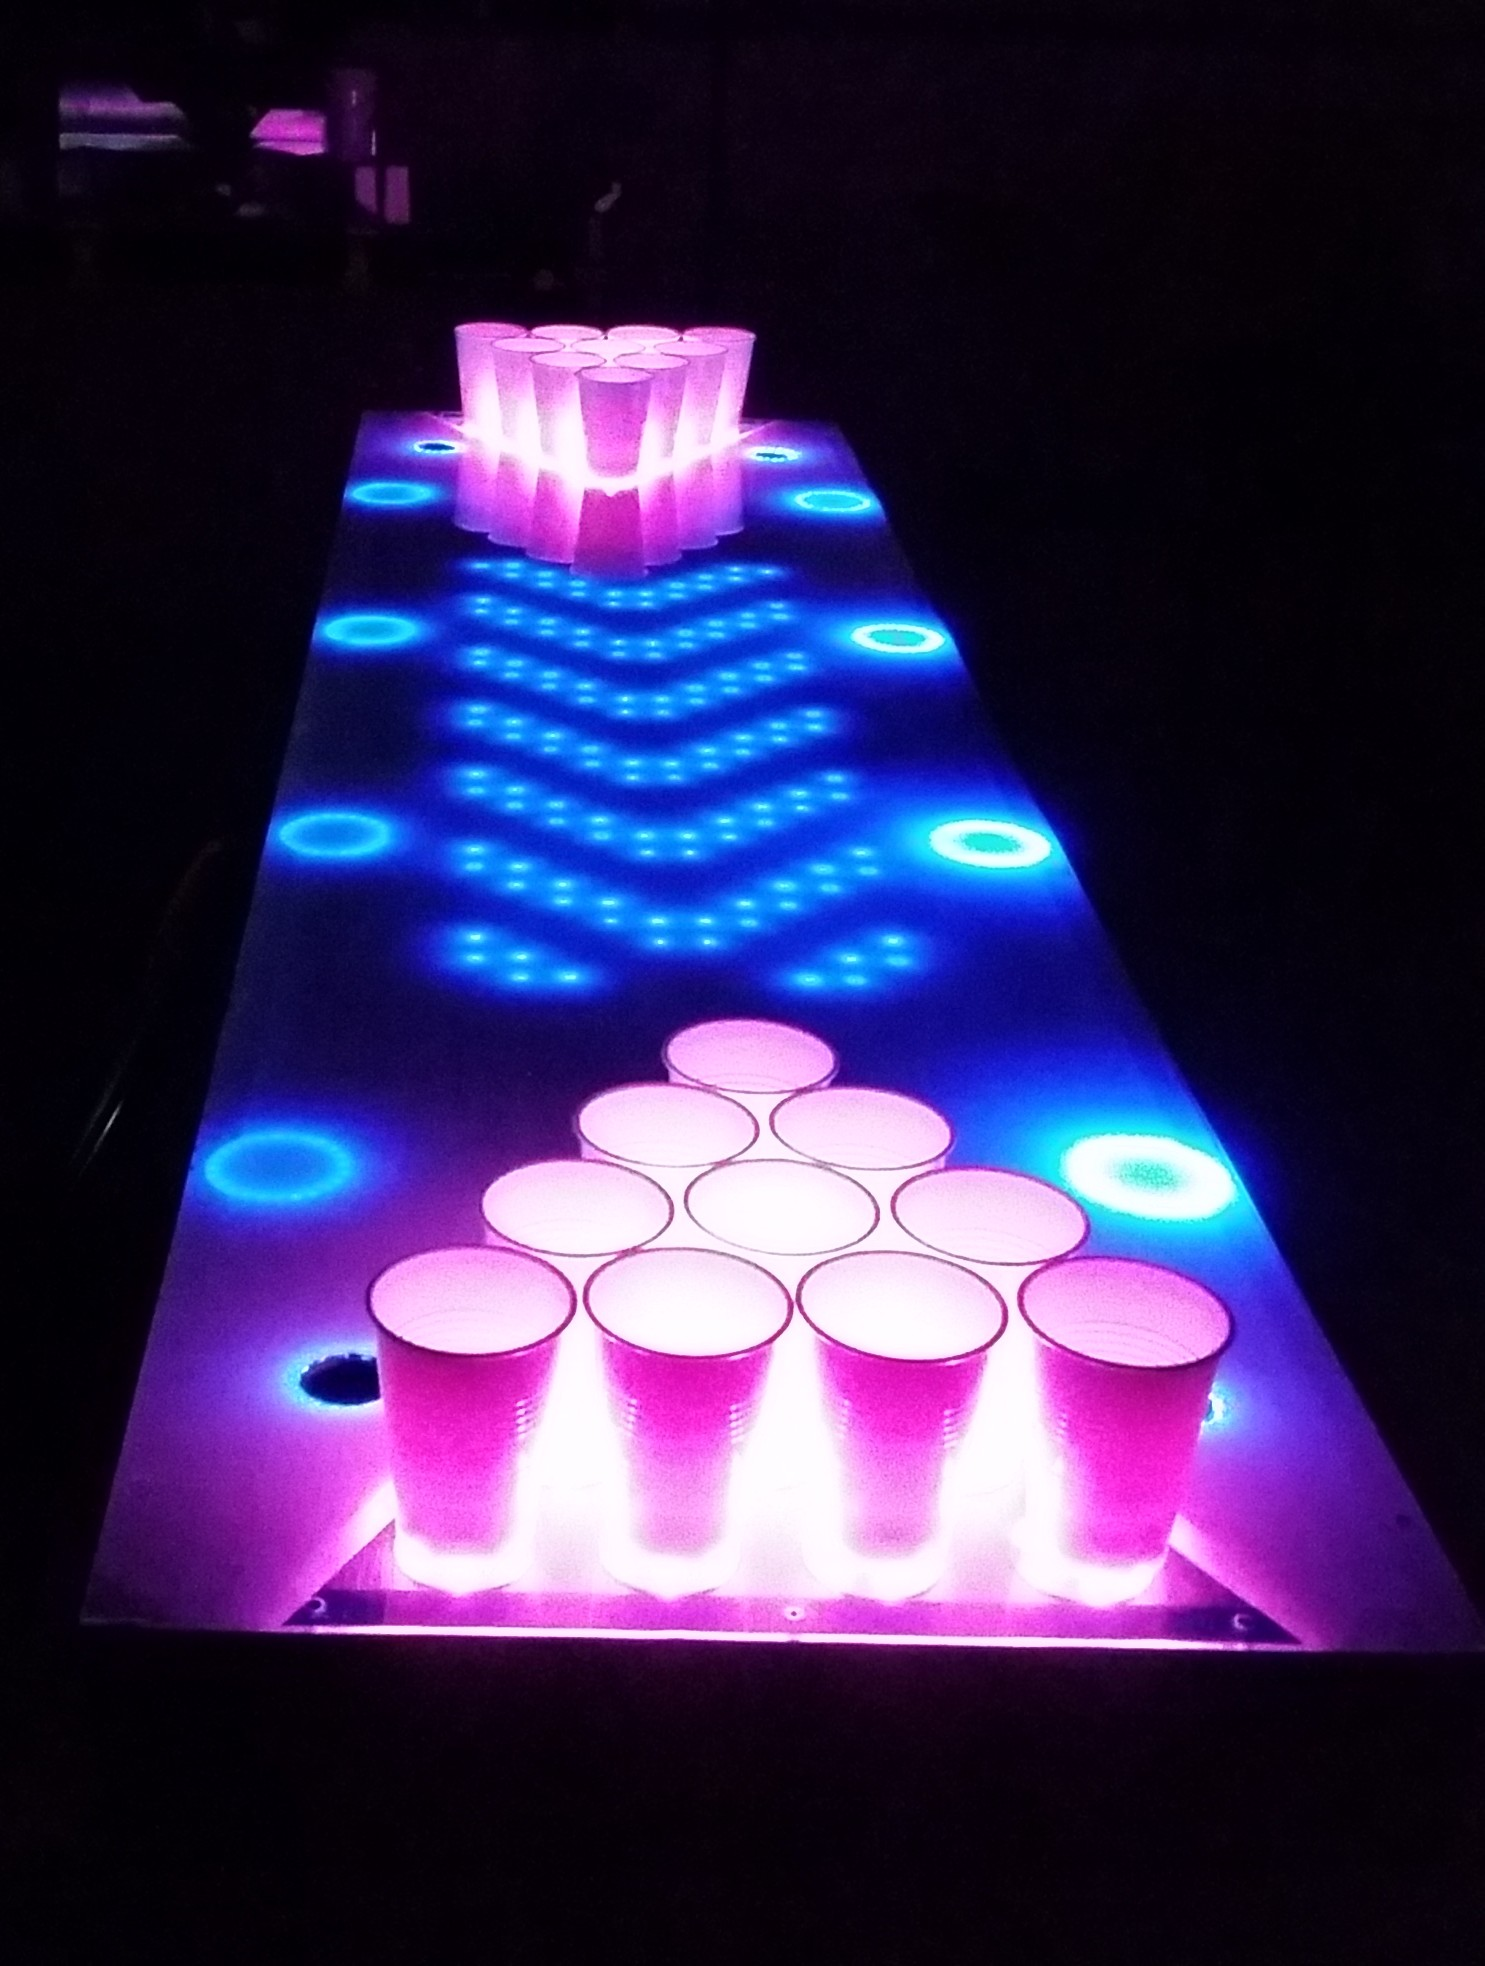 Final Prototype For The Interactive LED Beer Pong Table